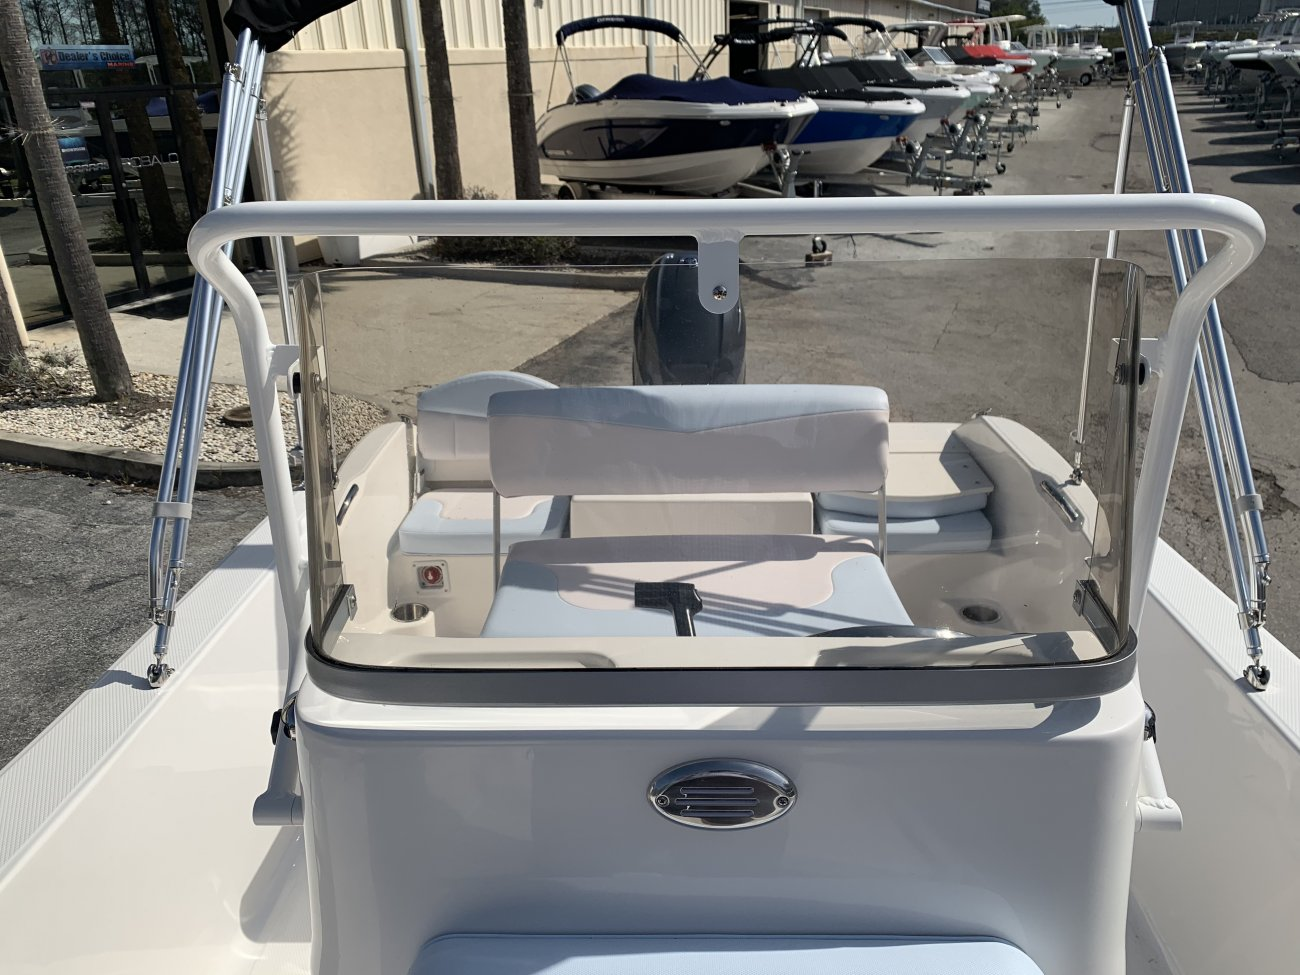 A R160 Center Console is a Power and could be classed as a Bay Boat, Center Console, Flats Boat, Freshwater Fishing, High Performance, Saltwater Fishing, Runabout,  or, just an overall Great Boat!